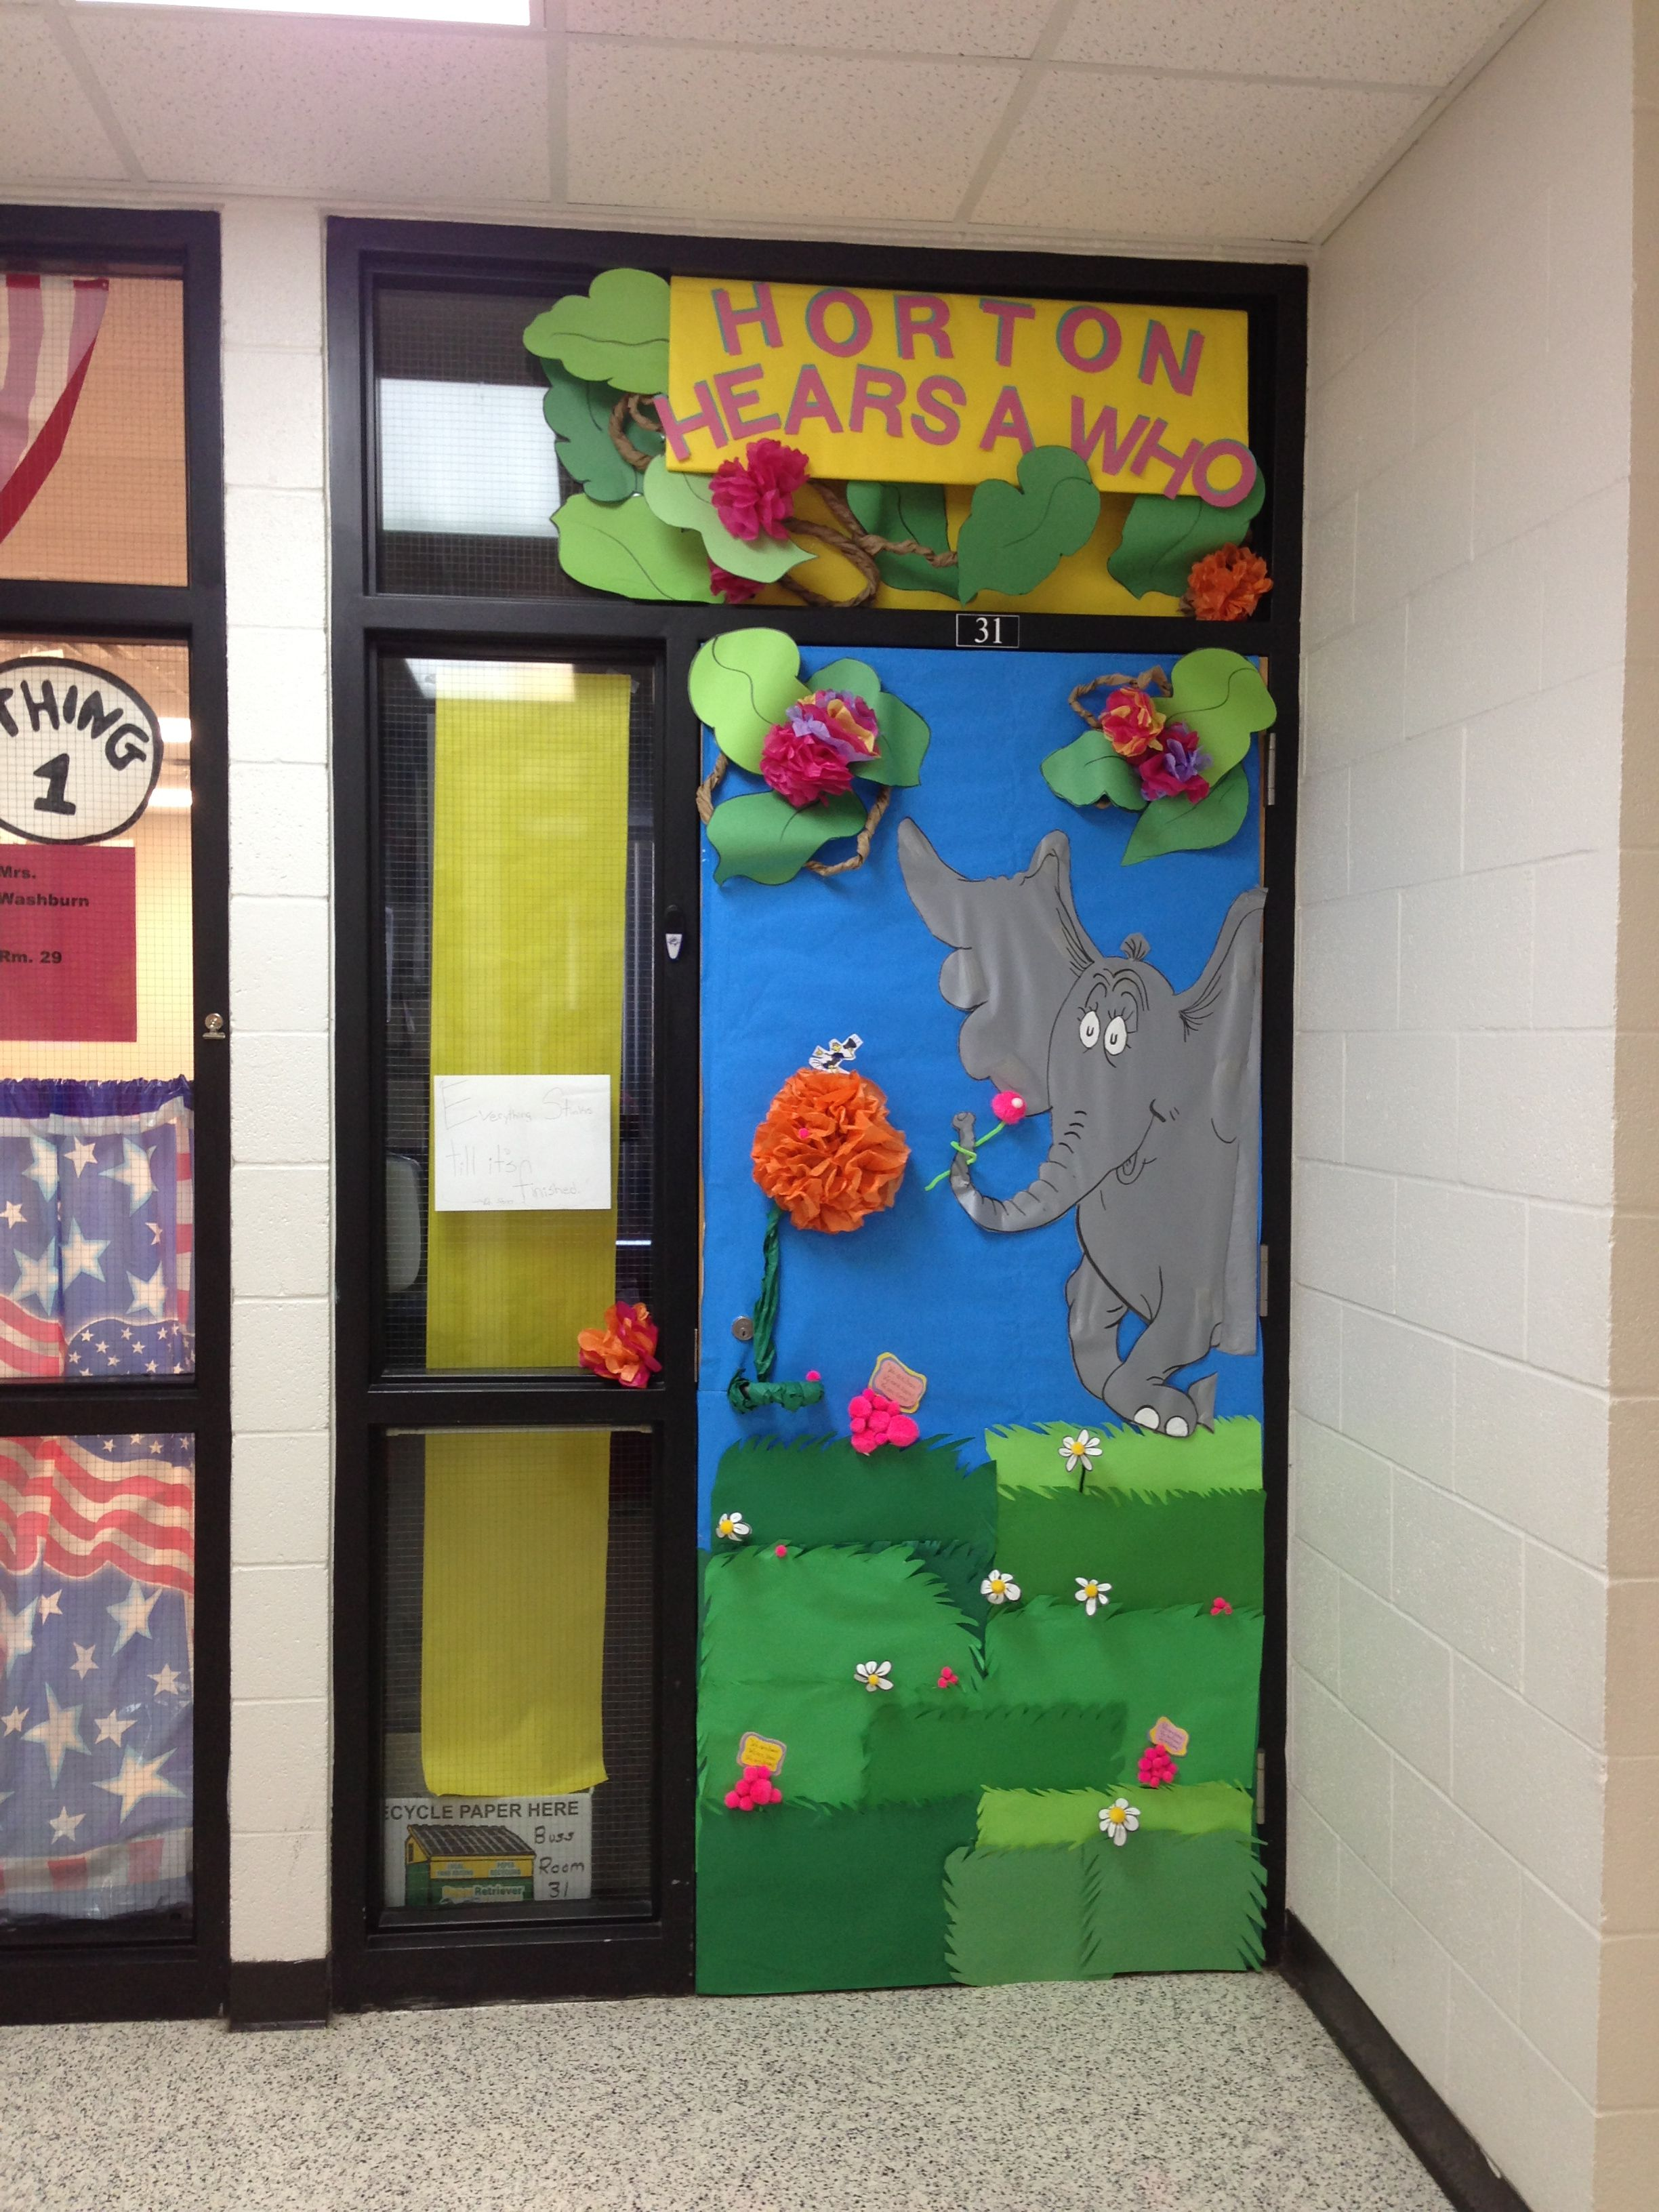 Dr Seuss Horton Hears A Who Door Decoration